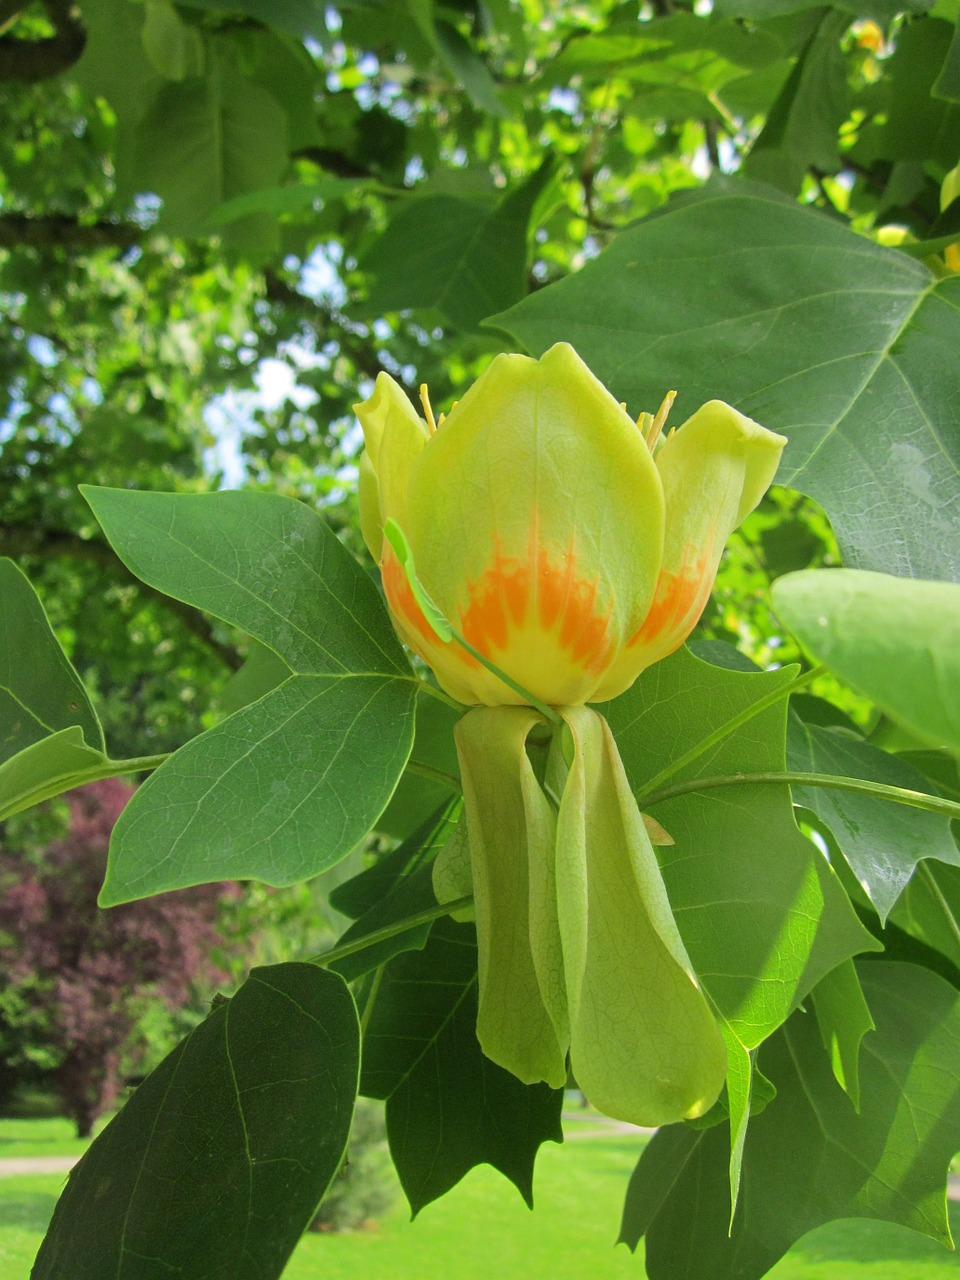 liriodendron tulipifera,tulip tree,american tulip tree,tuliptree,tulip poplar,whitewood,fiddle-tree,yellow poplar,tree,flora,botany,plant,species,free pictures, free photos, free images, royalty free, free illustrations